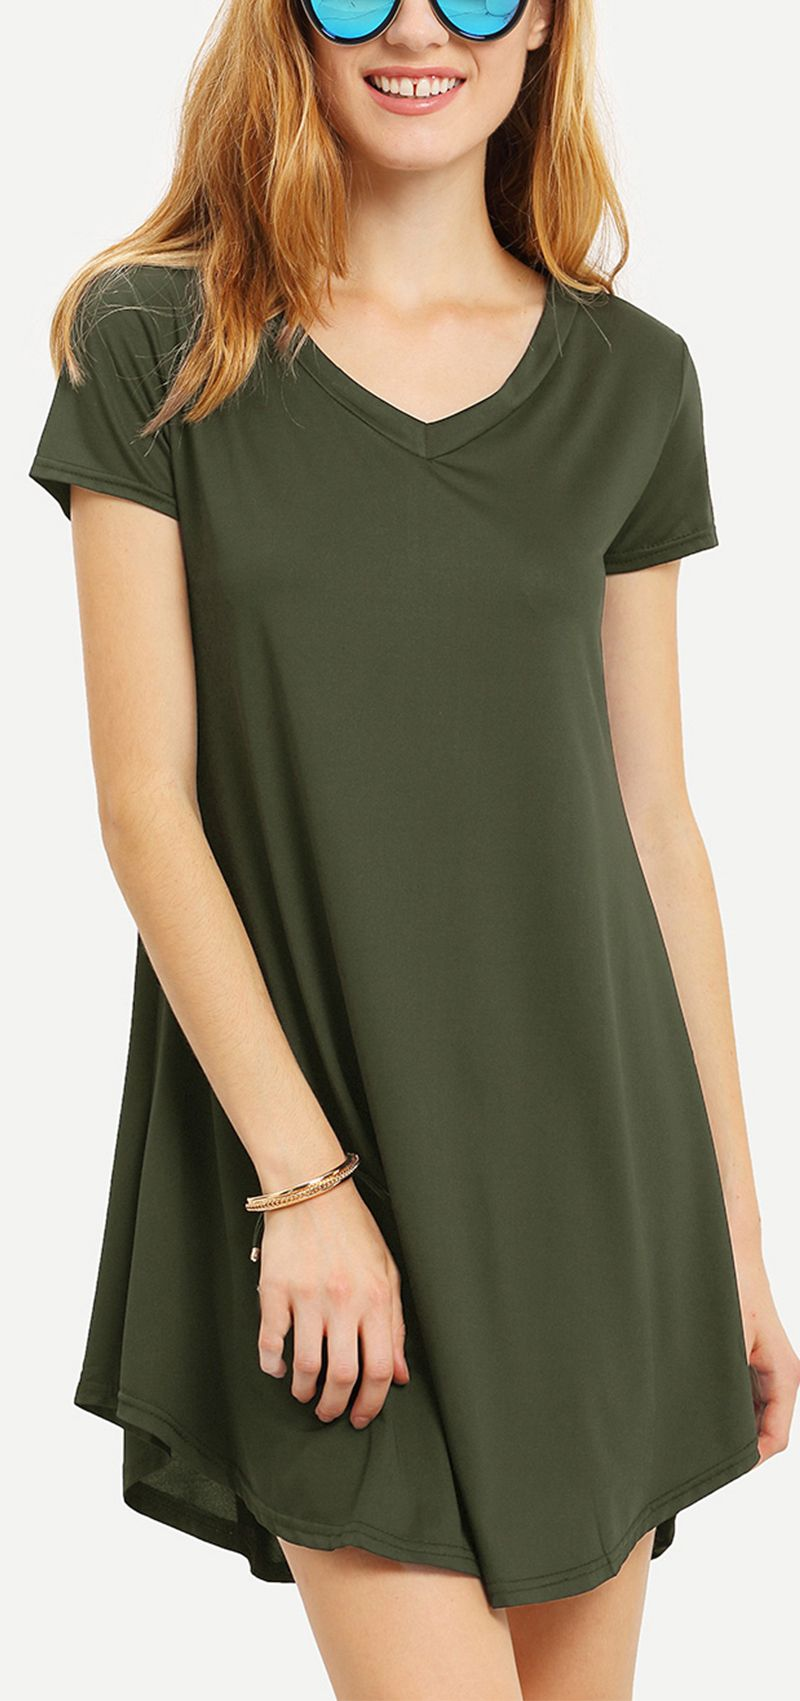 Optimize your comfort and beauty with this Olive Green V Neck Swing Tee  Dress. The v neckline design makes you modest! Own it now! 2be4d837f82f